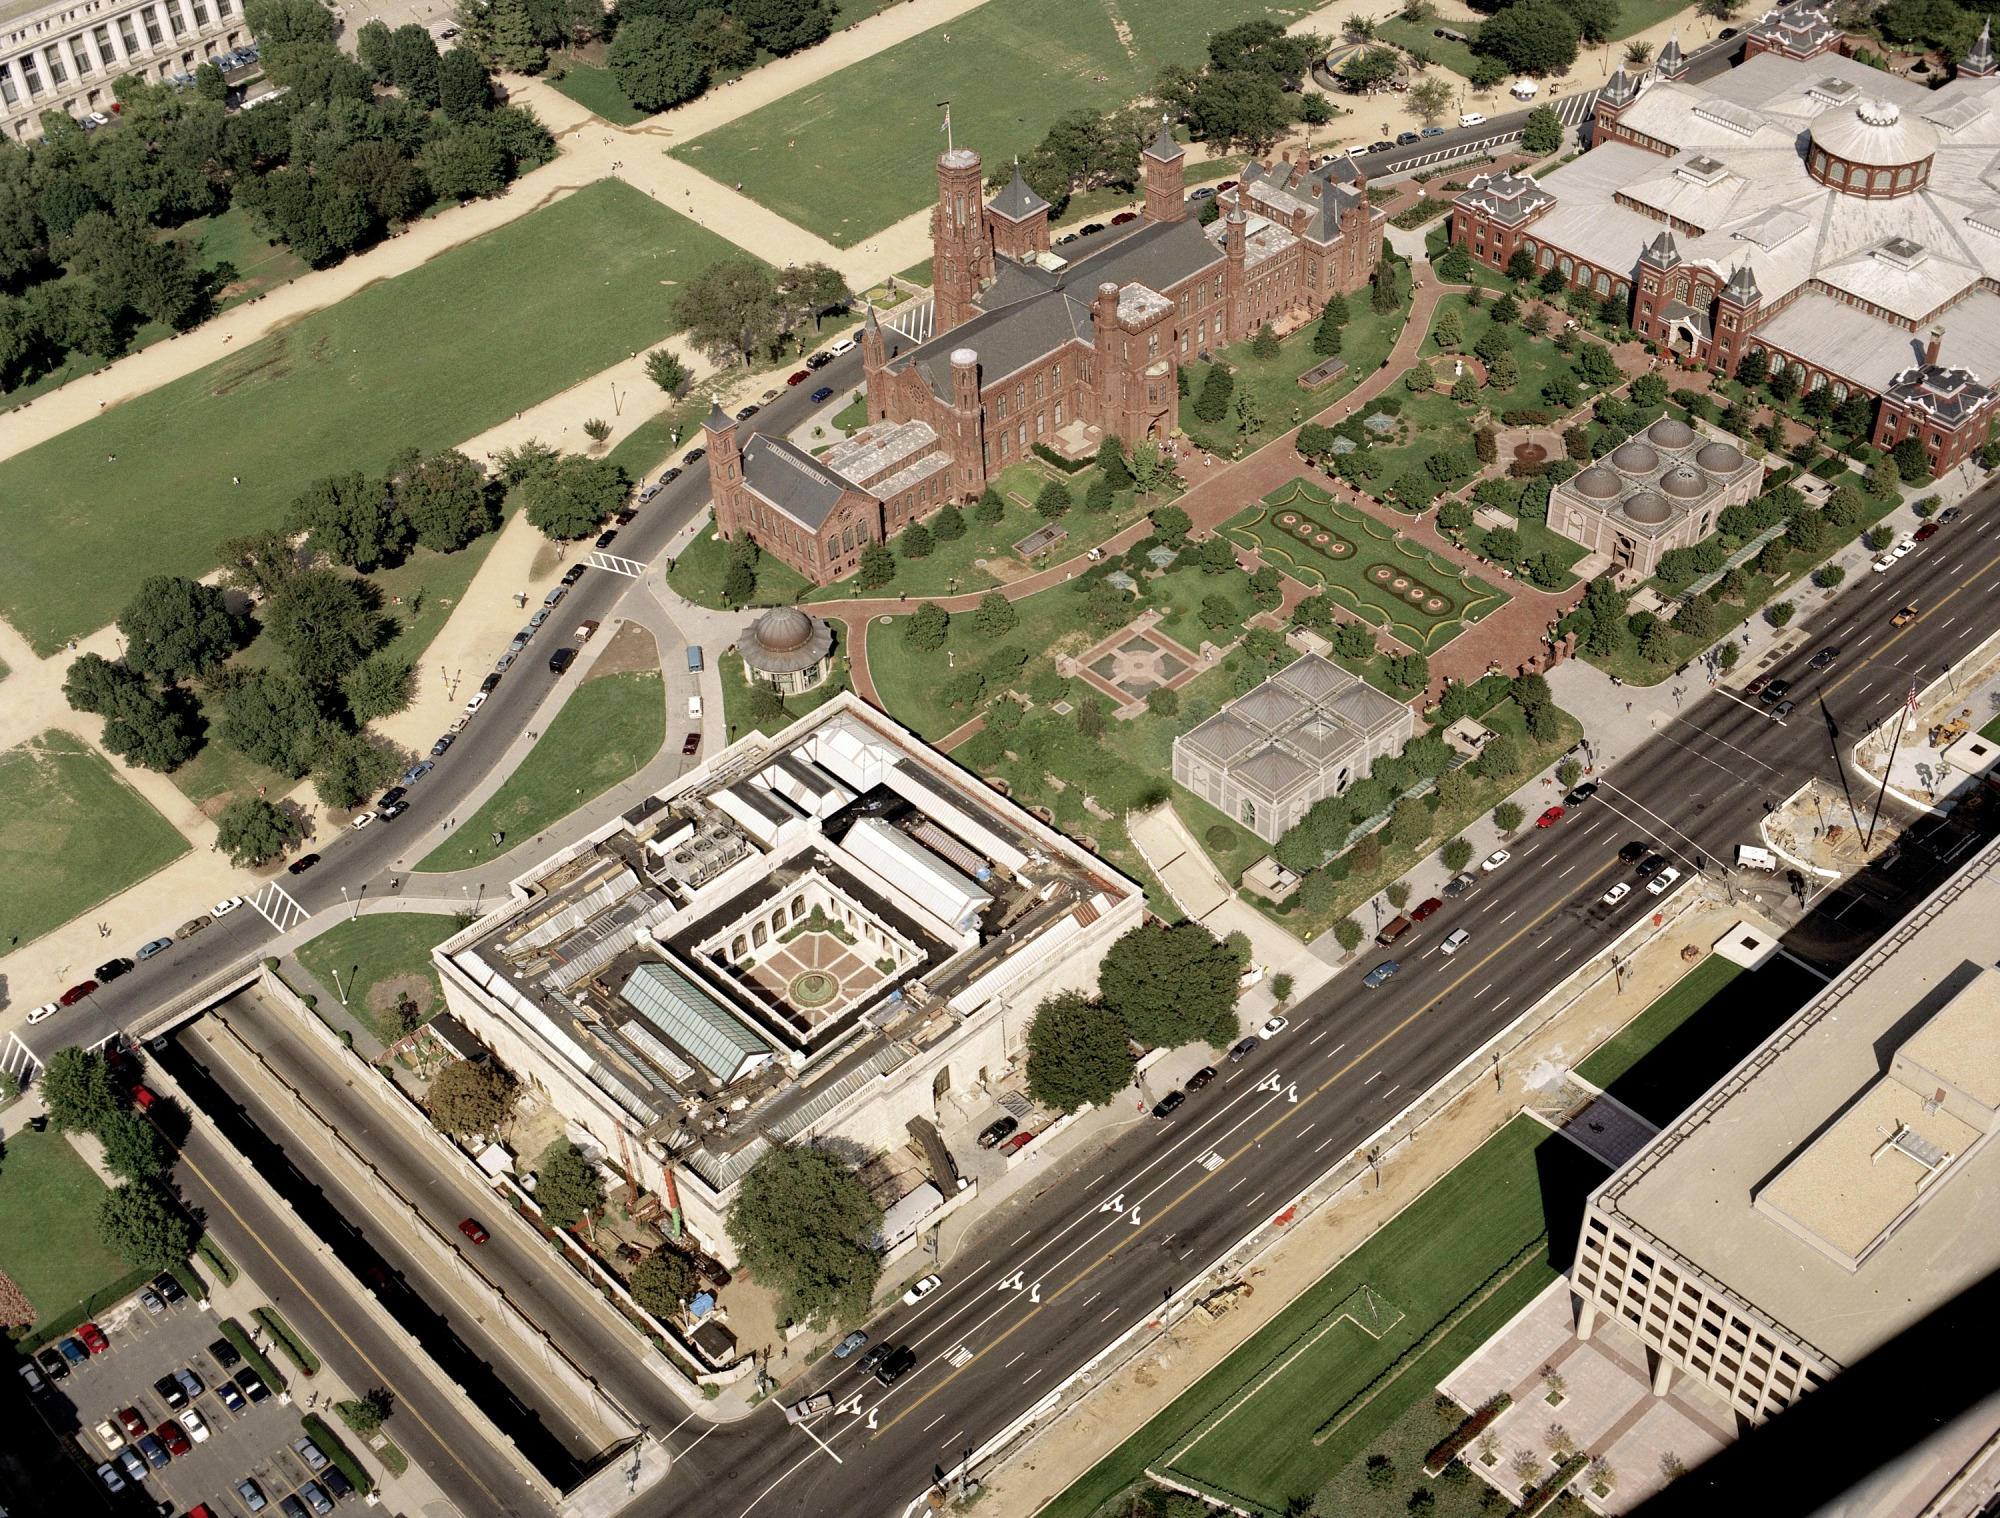 Aug 23 Aerial View of Quadrangle